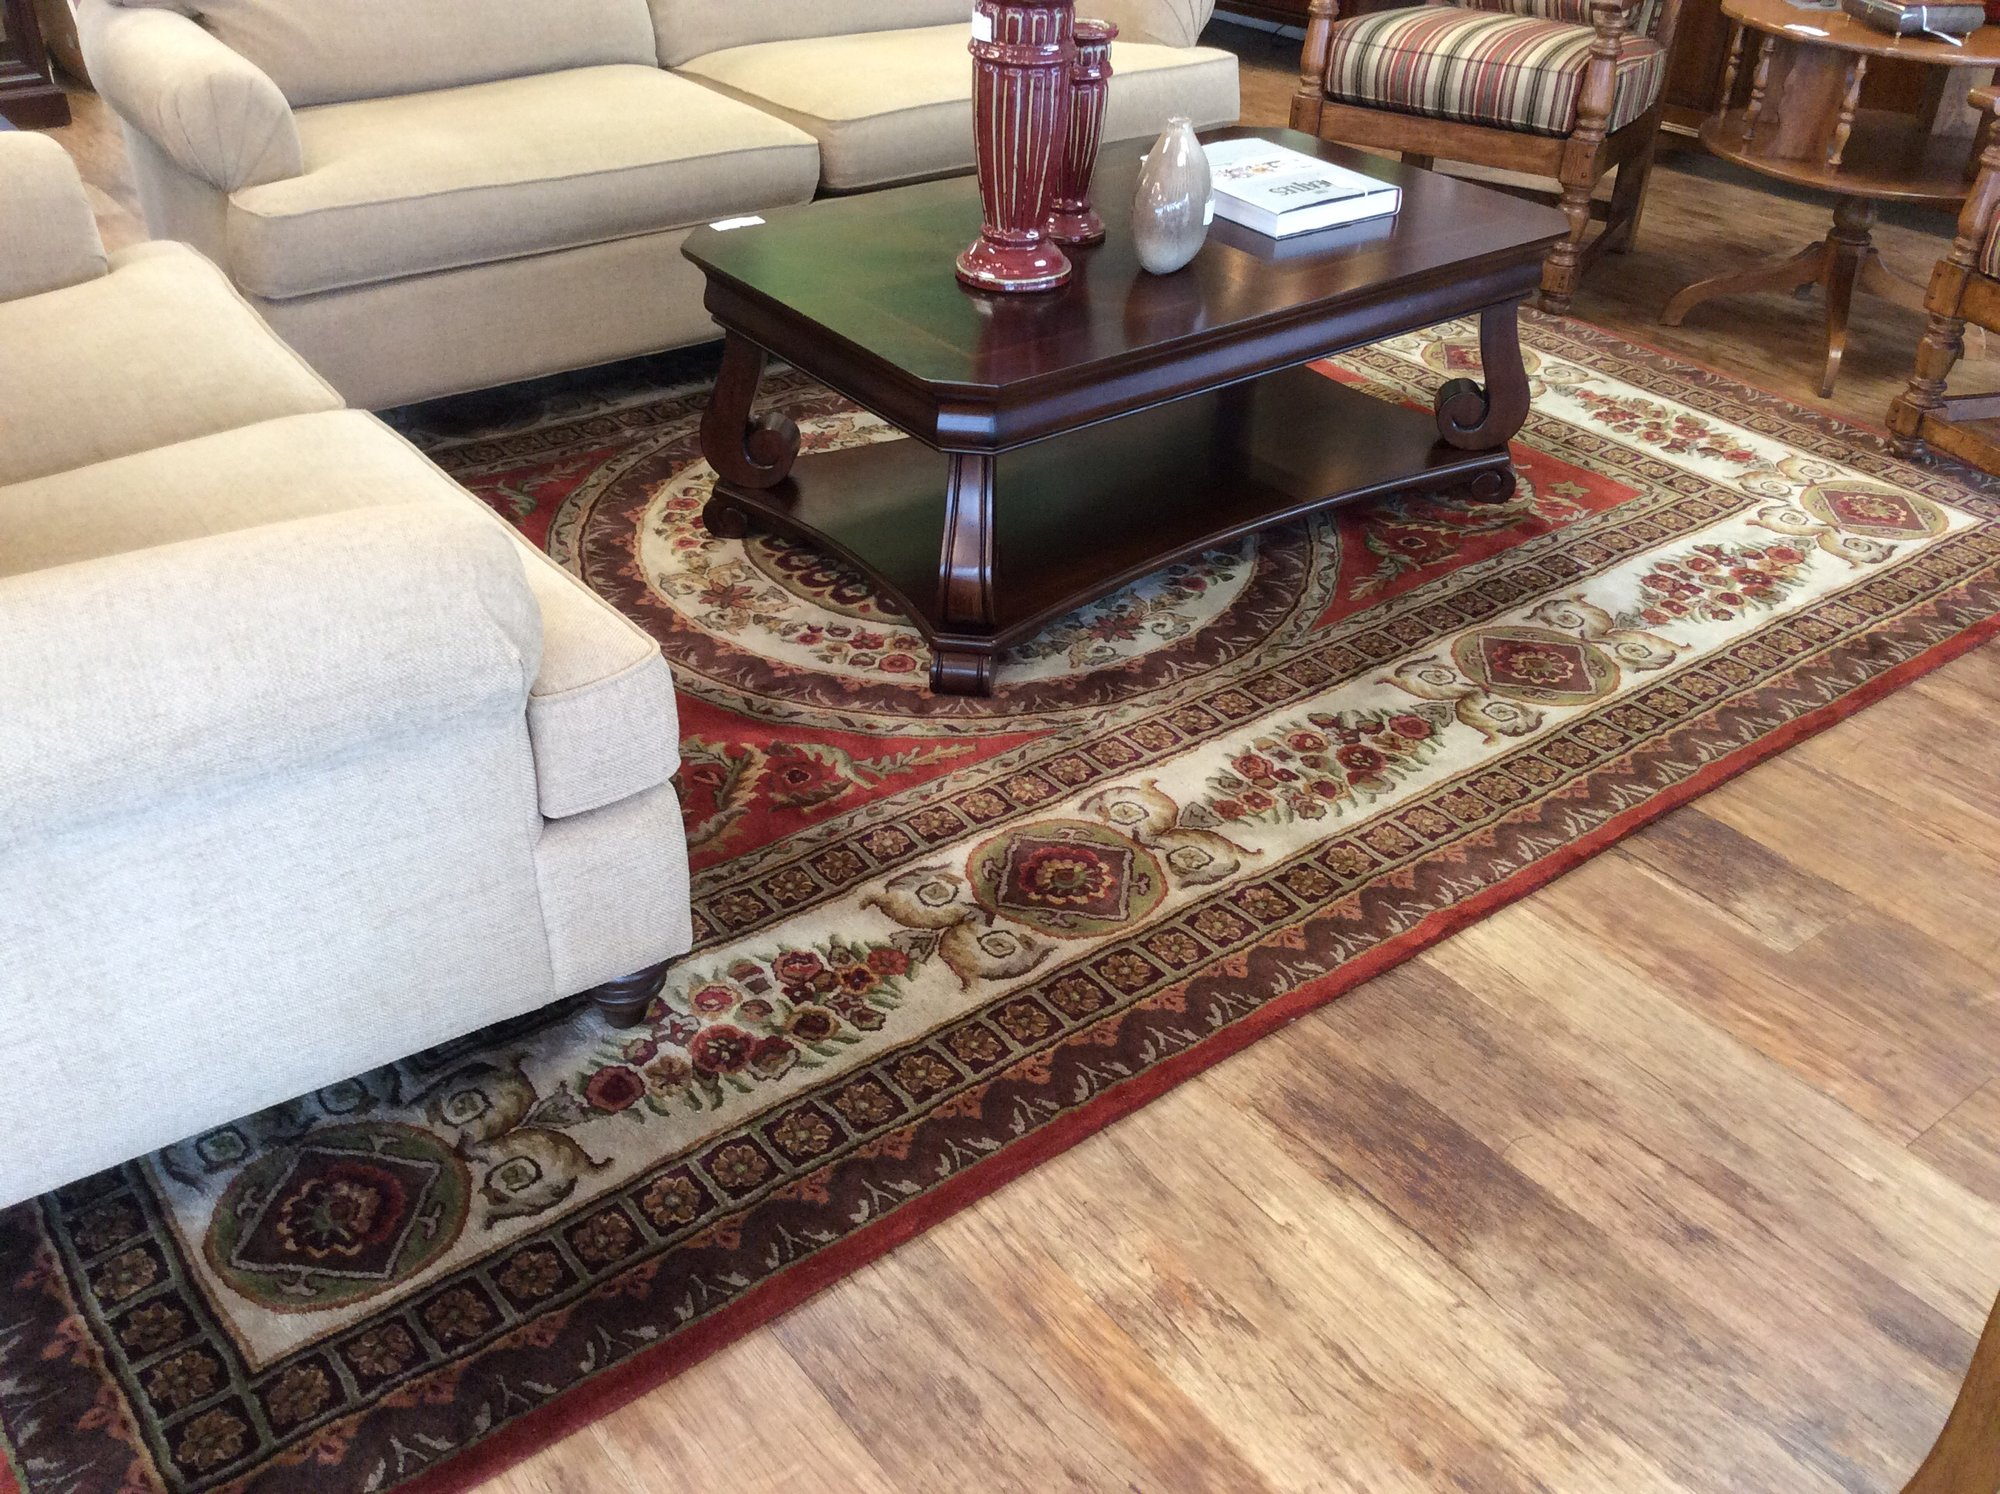 This rug is priced to move at only $225! That is a real bargain, isn't it? If you like reds and need a good sized (8'x12.3') rug somewhere, this one may be for you. The owner recently had it professionally cleaned, and some people think there is a bit of a chemical smell to it. Come smell it for yourself!